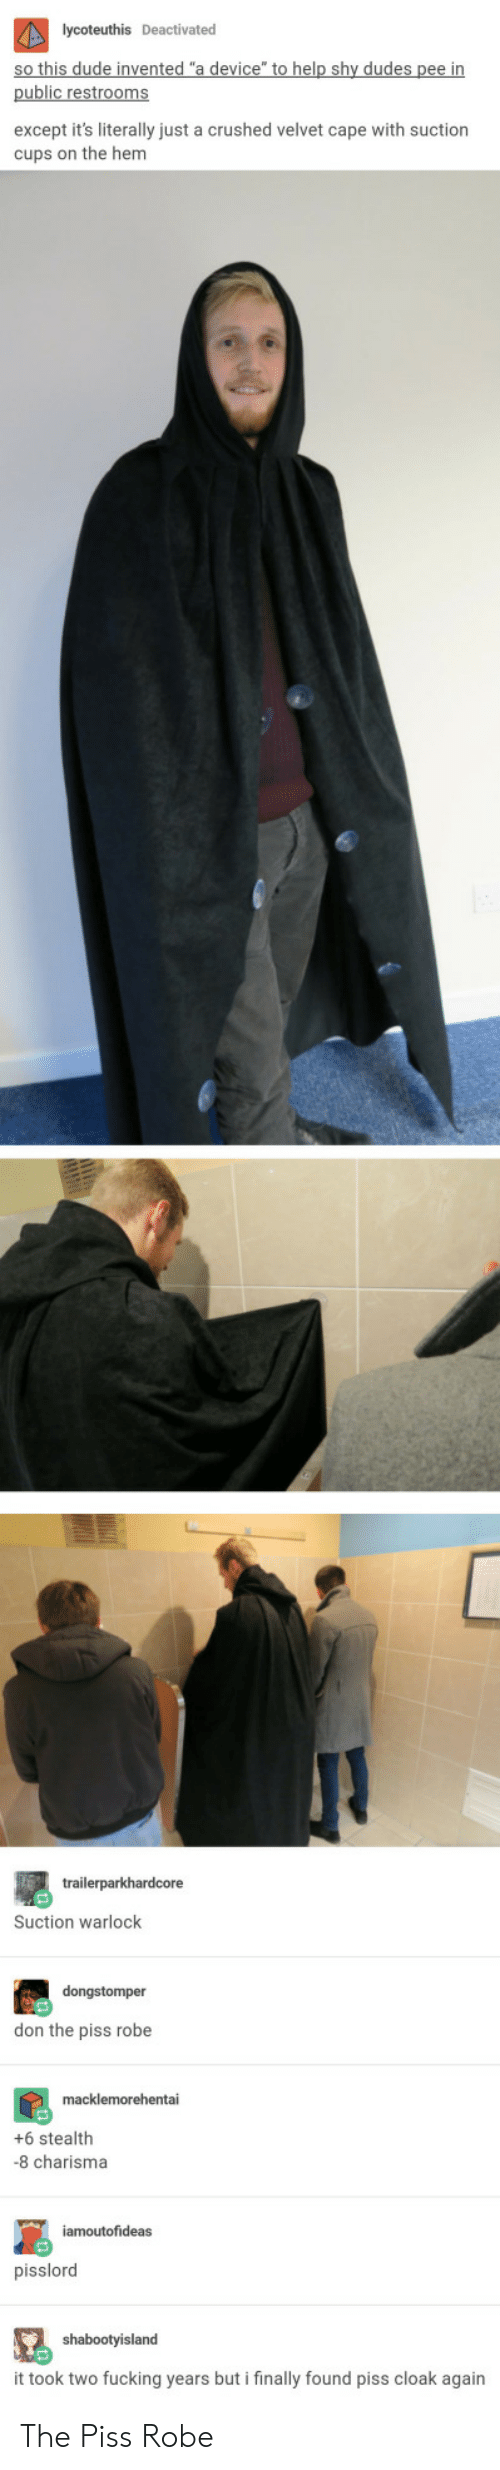 velvet: lycoteuthis Deactivated  ude  public restrooms  except it's literally just a crushed velvet cape with suction  cups on the hem  Suction warlock  don the piss robe  +6 stealth  8 charisma  pisslord  shabootyisland  it took two fucking years but i finally found piss cloak again  ally found The Piss Robe